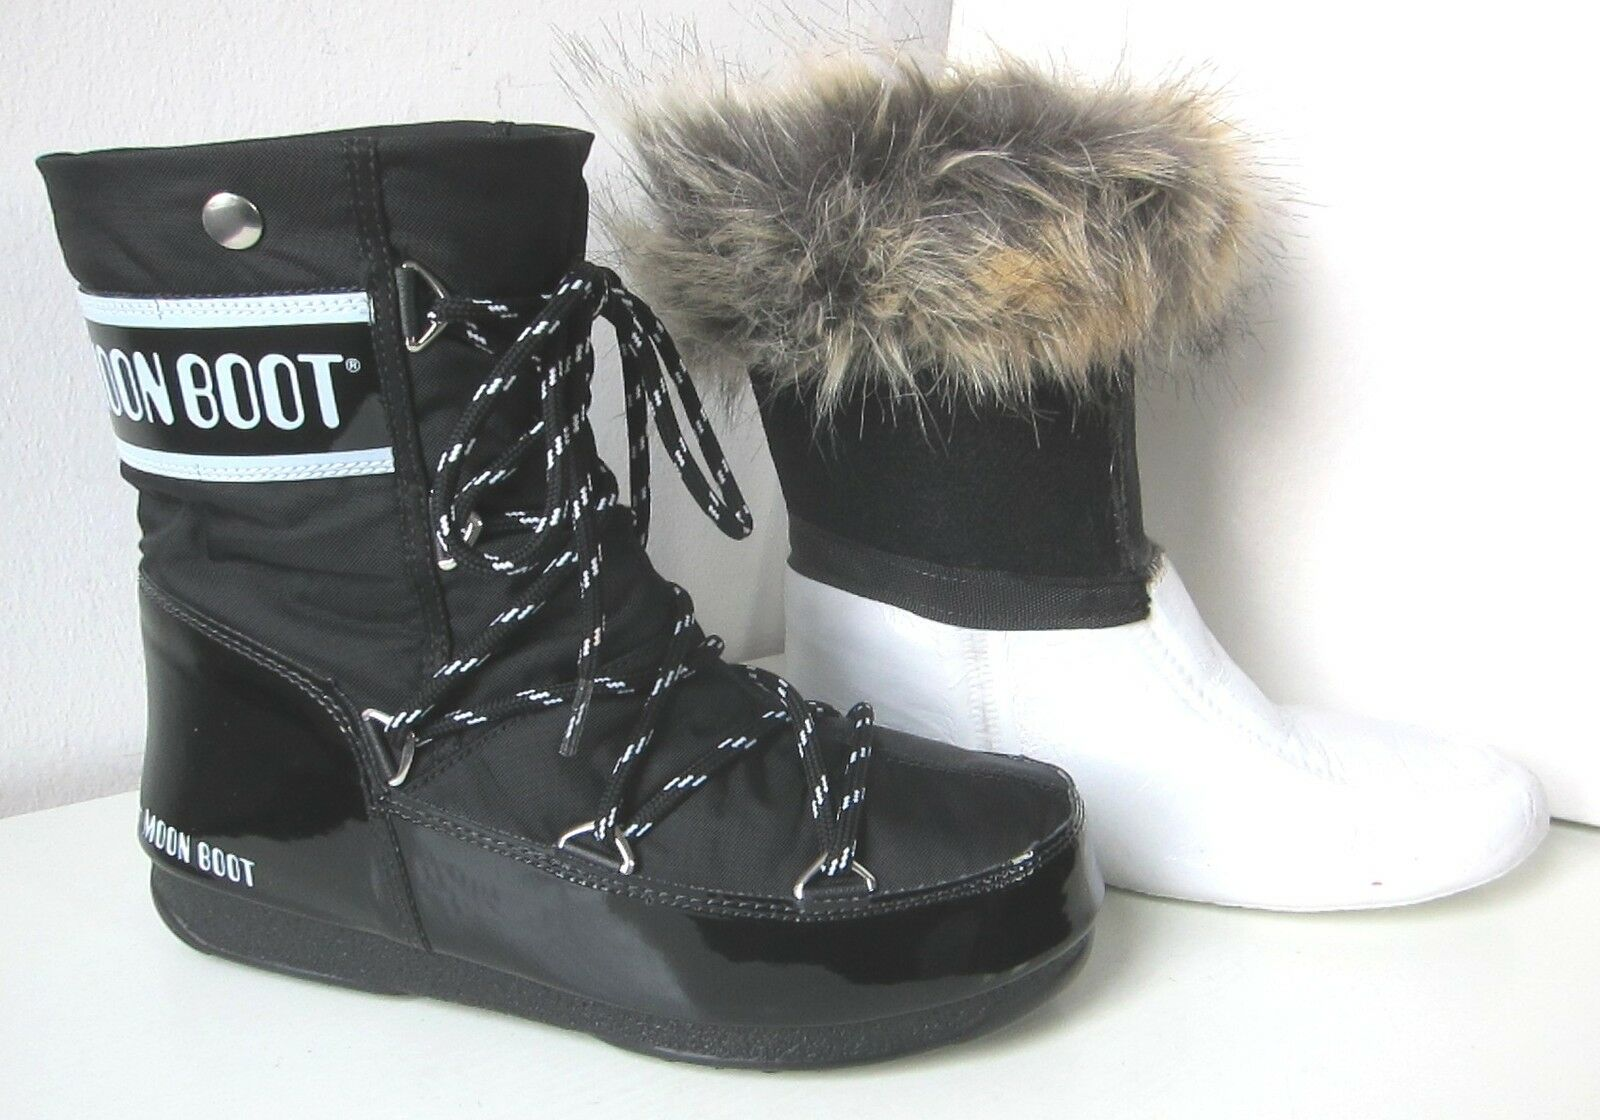 Tecnica MOON BOOT Monaco low rot Gr. 38 Moon Boots fur red Kunstfell Fell fake fur Boots 578176